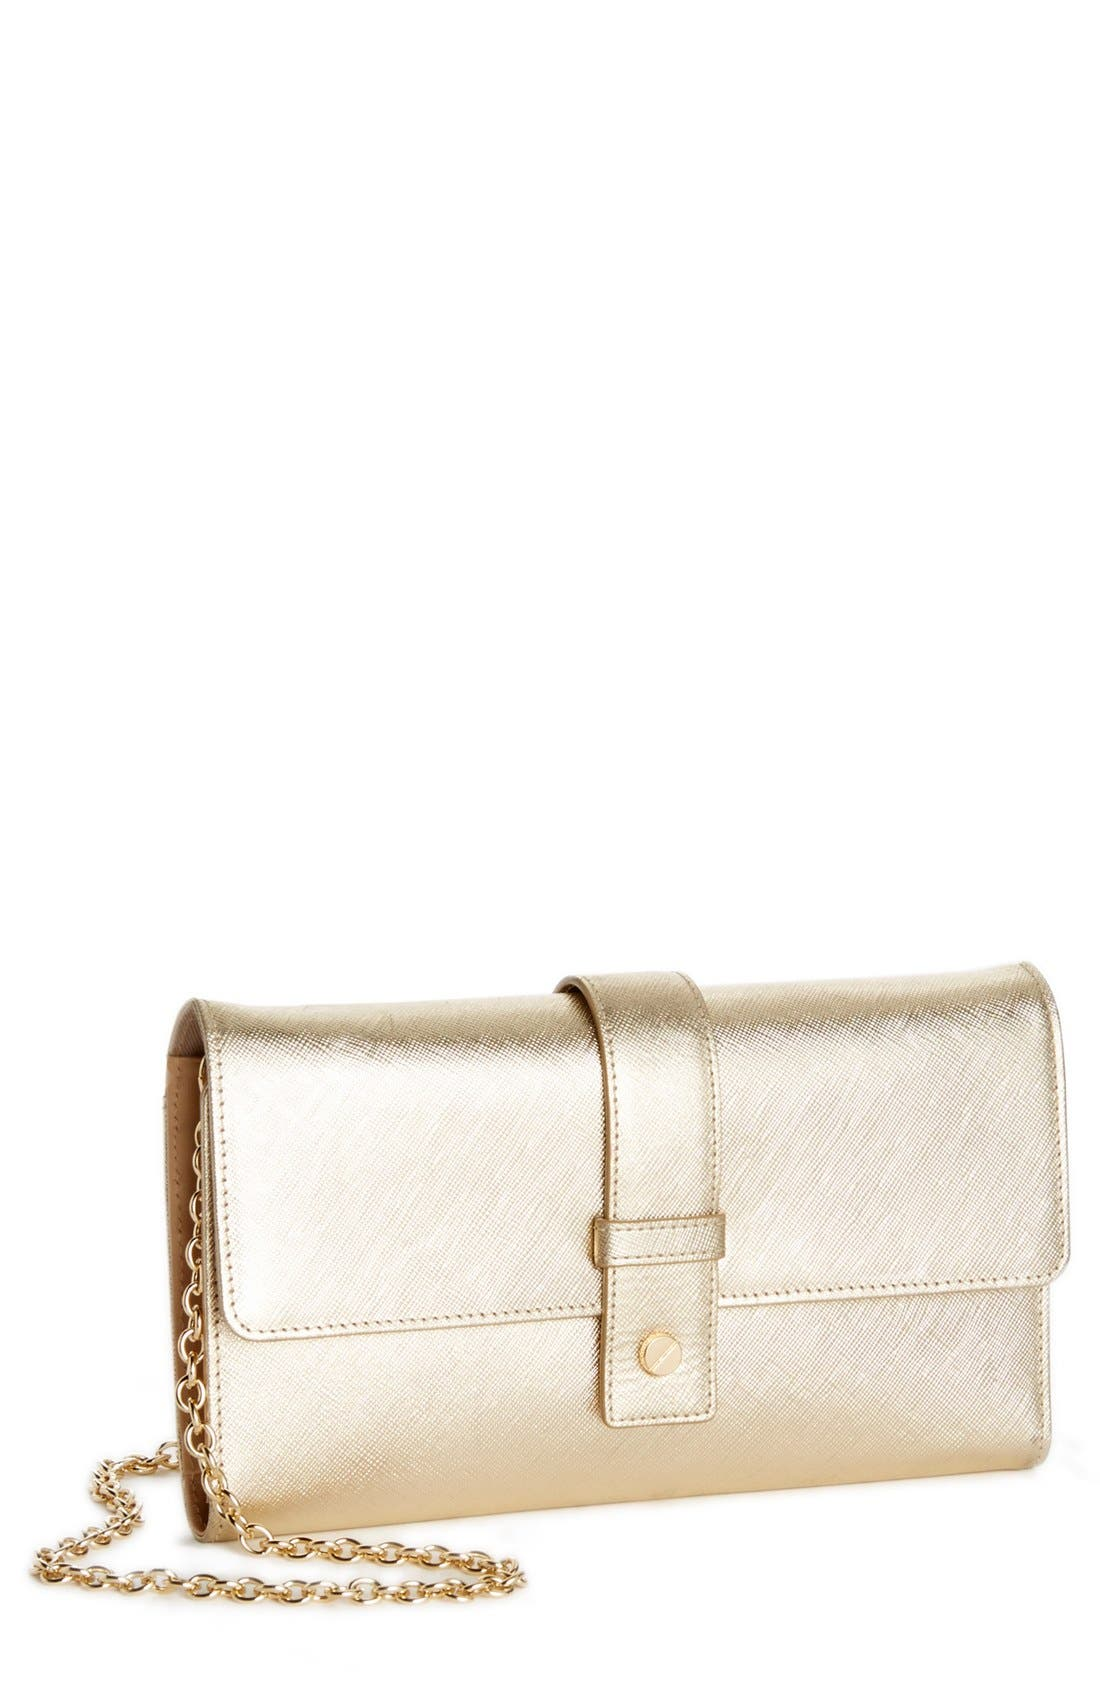 Main Image - Halogen® Saffiano Leather Crossbody Clutch Wallet